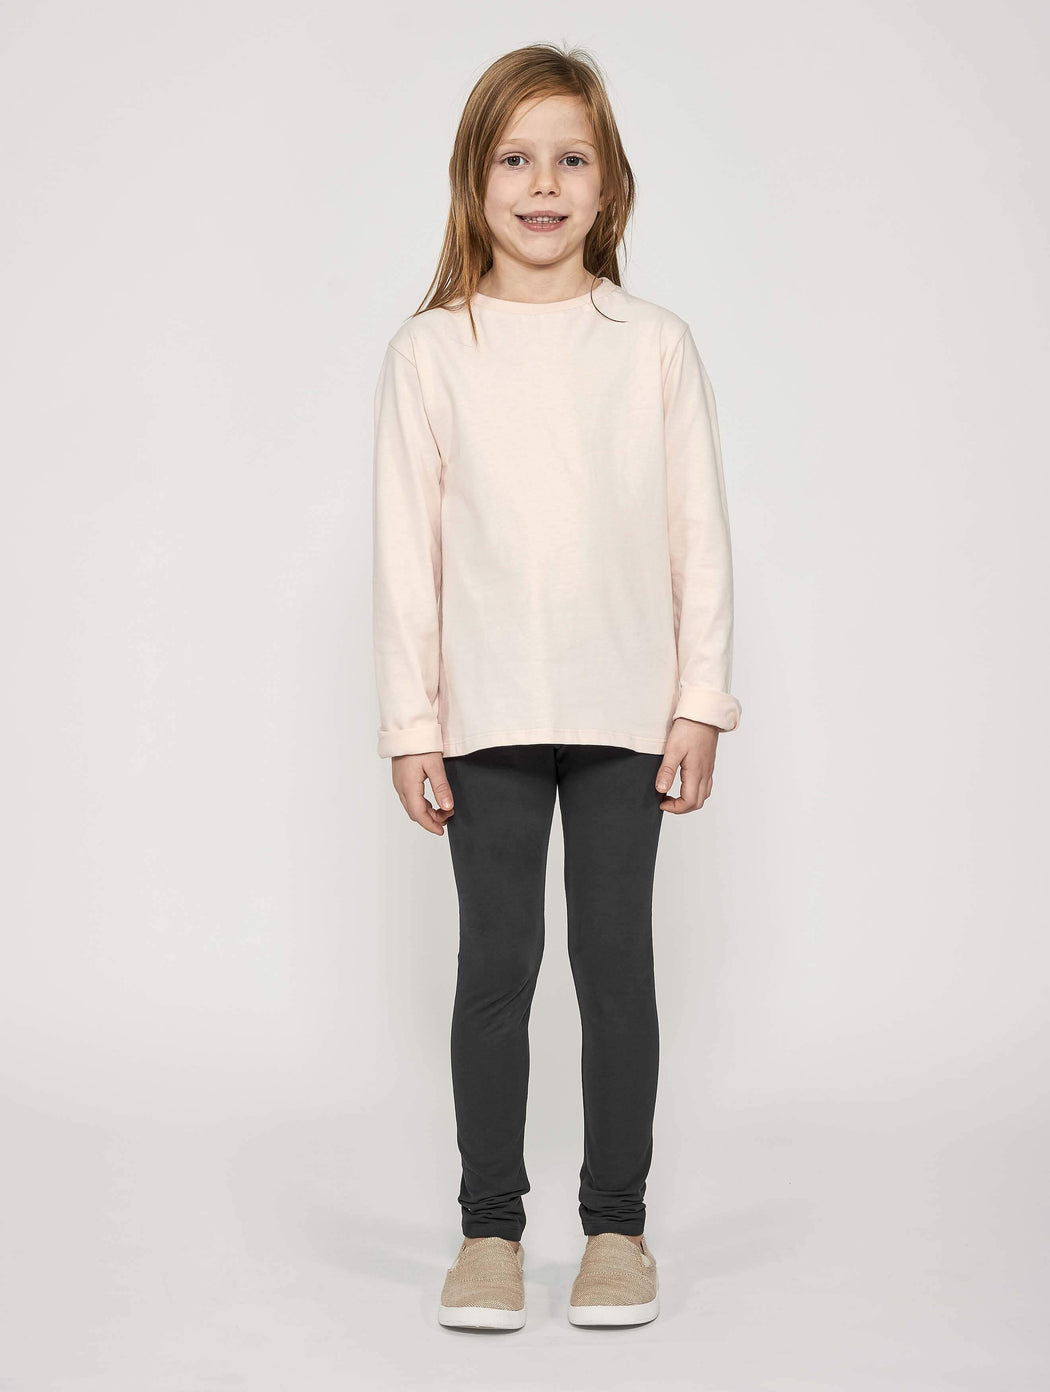 Mighty Longsleeve - Seashell Blush | T-shirts & Tops | ORBASICS | [product_tag] - Fair Bazaar Ethical Living